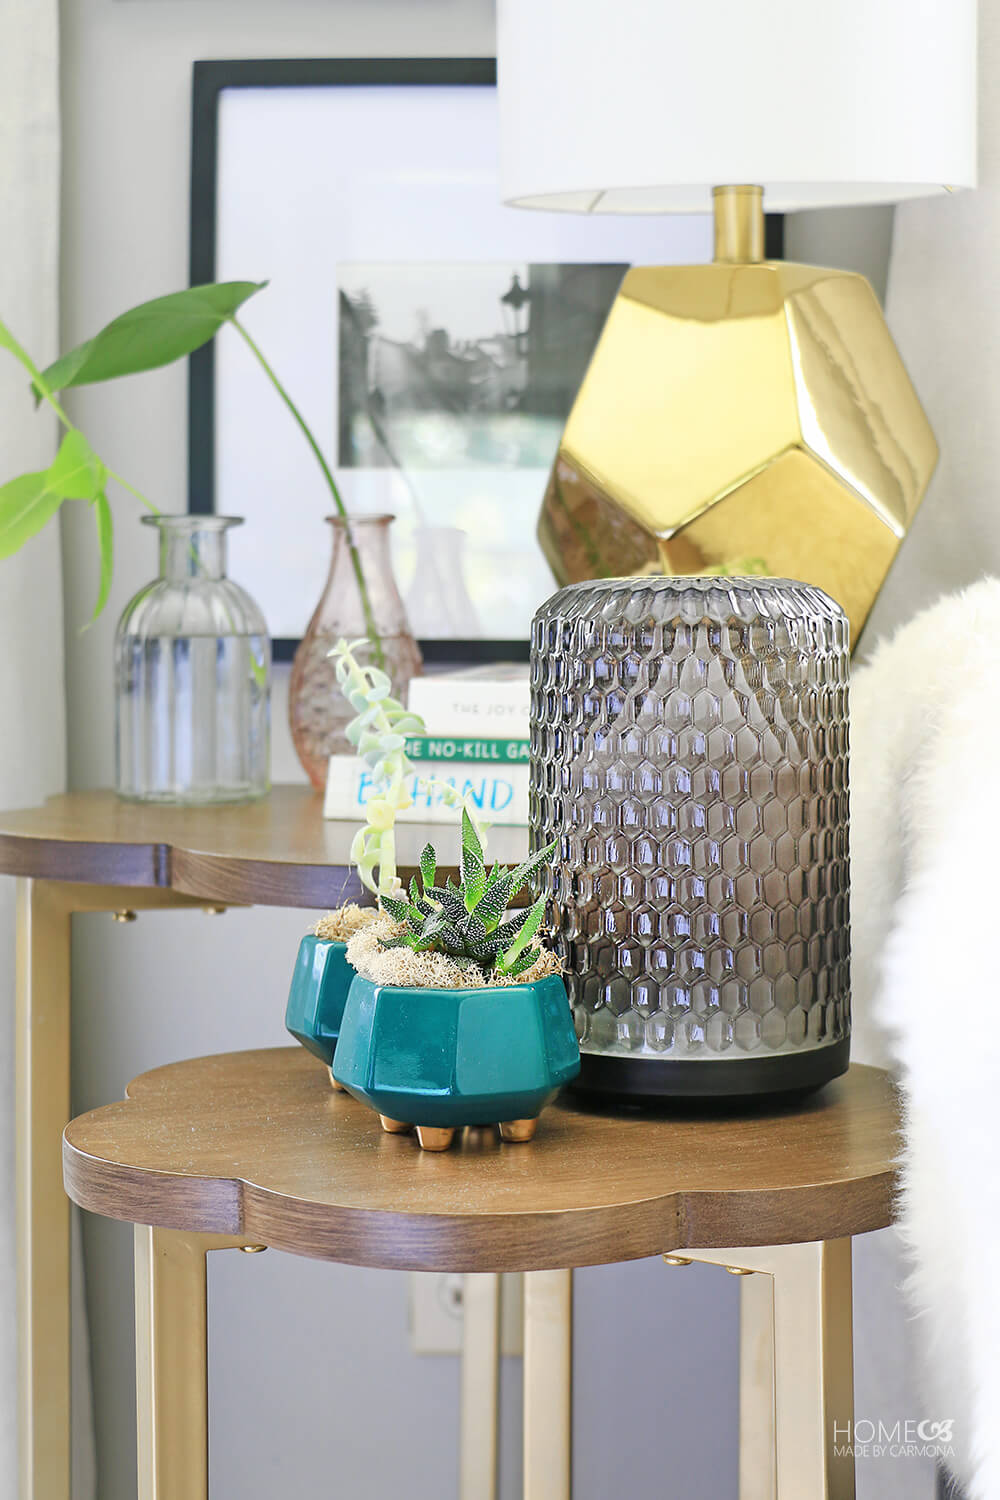 BHG-Geometric-lamp-and-oil-diffuser